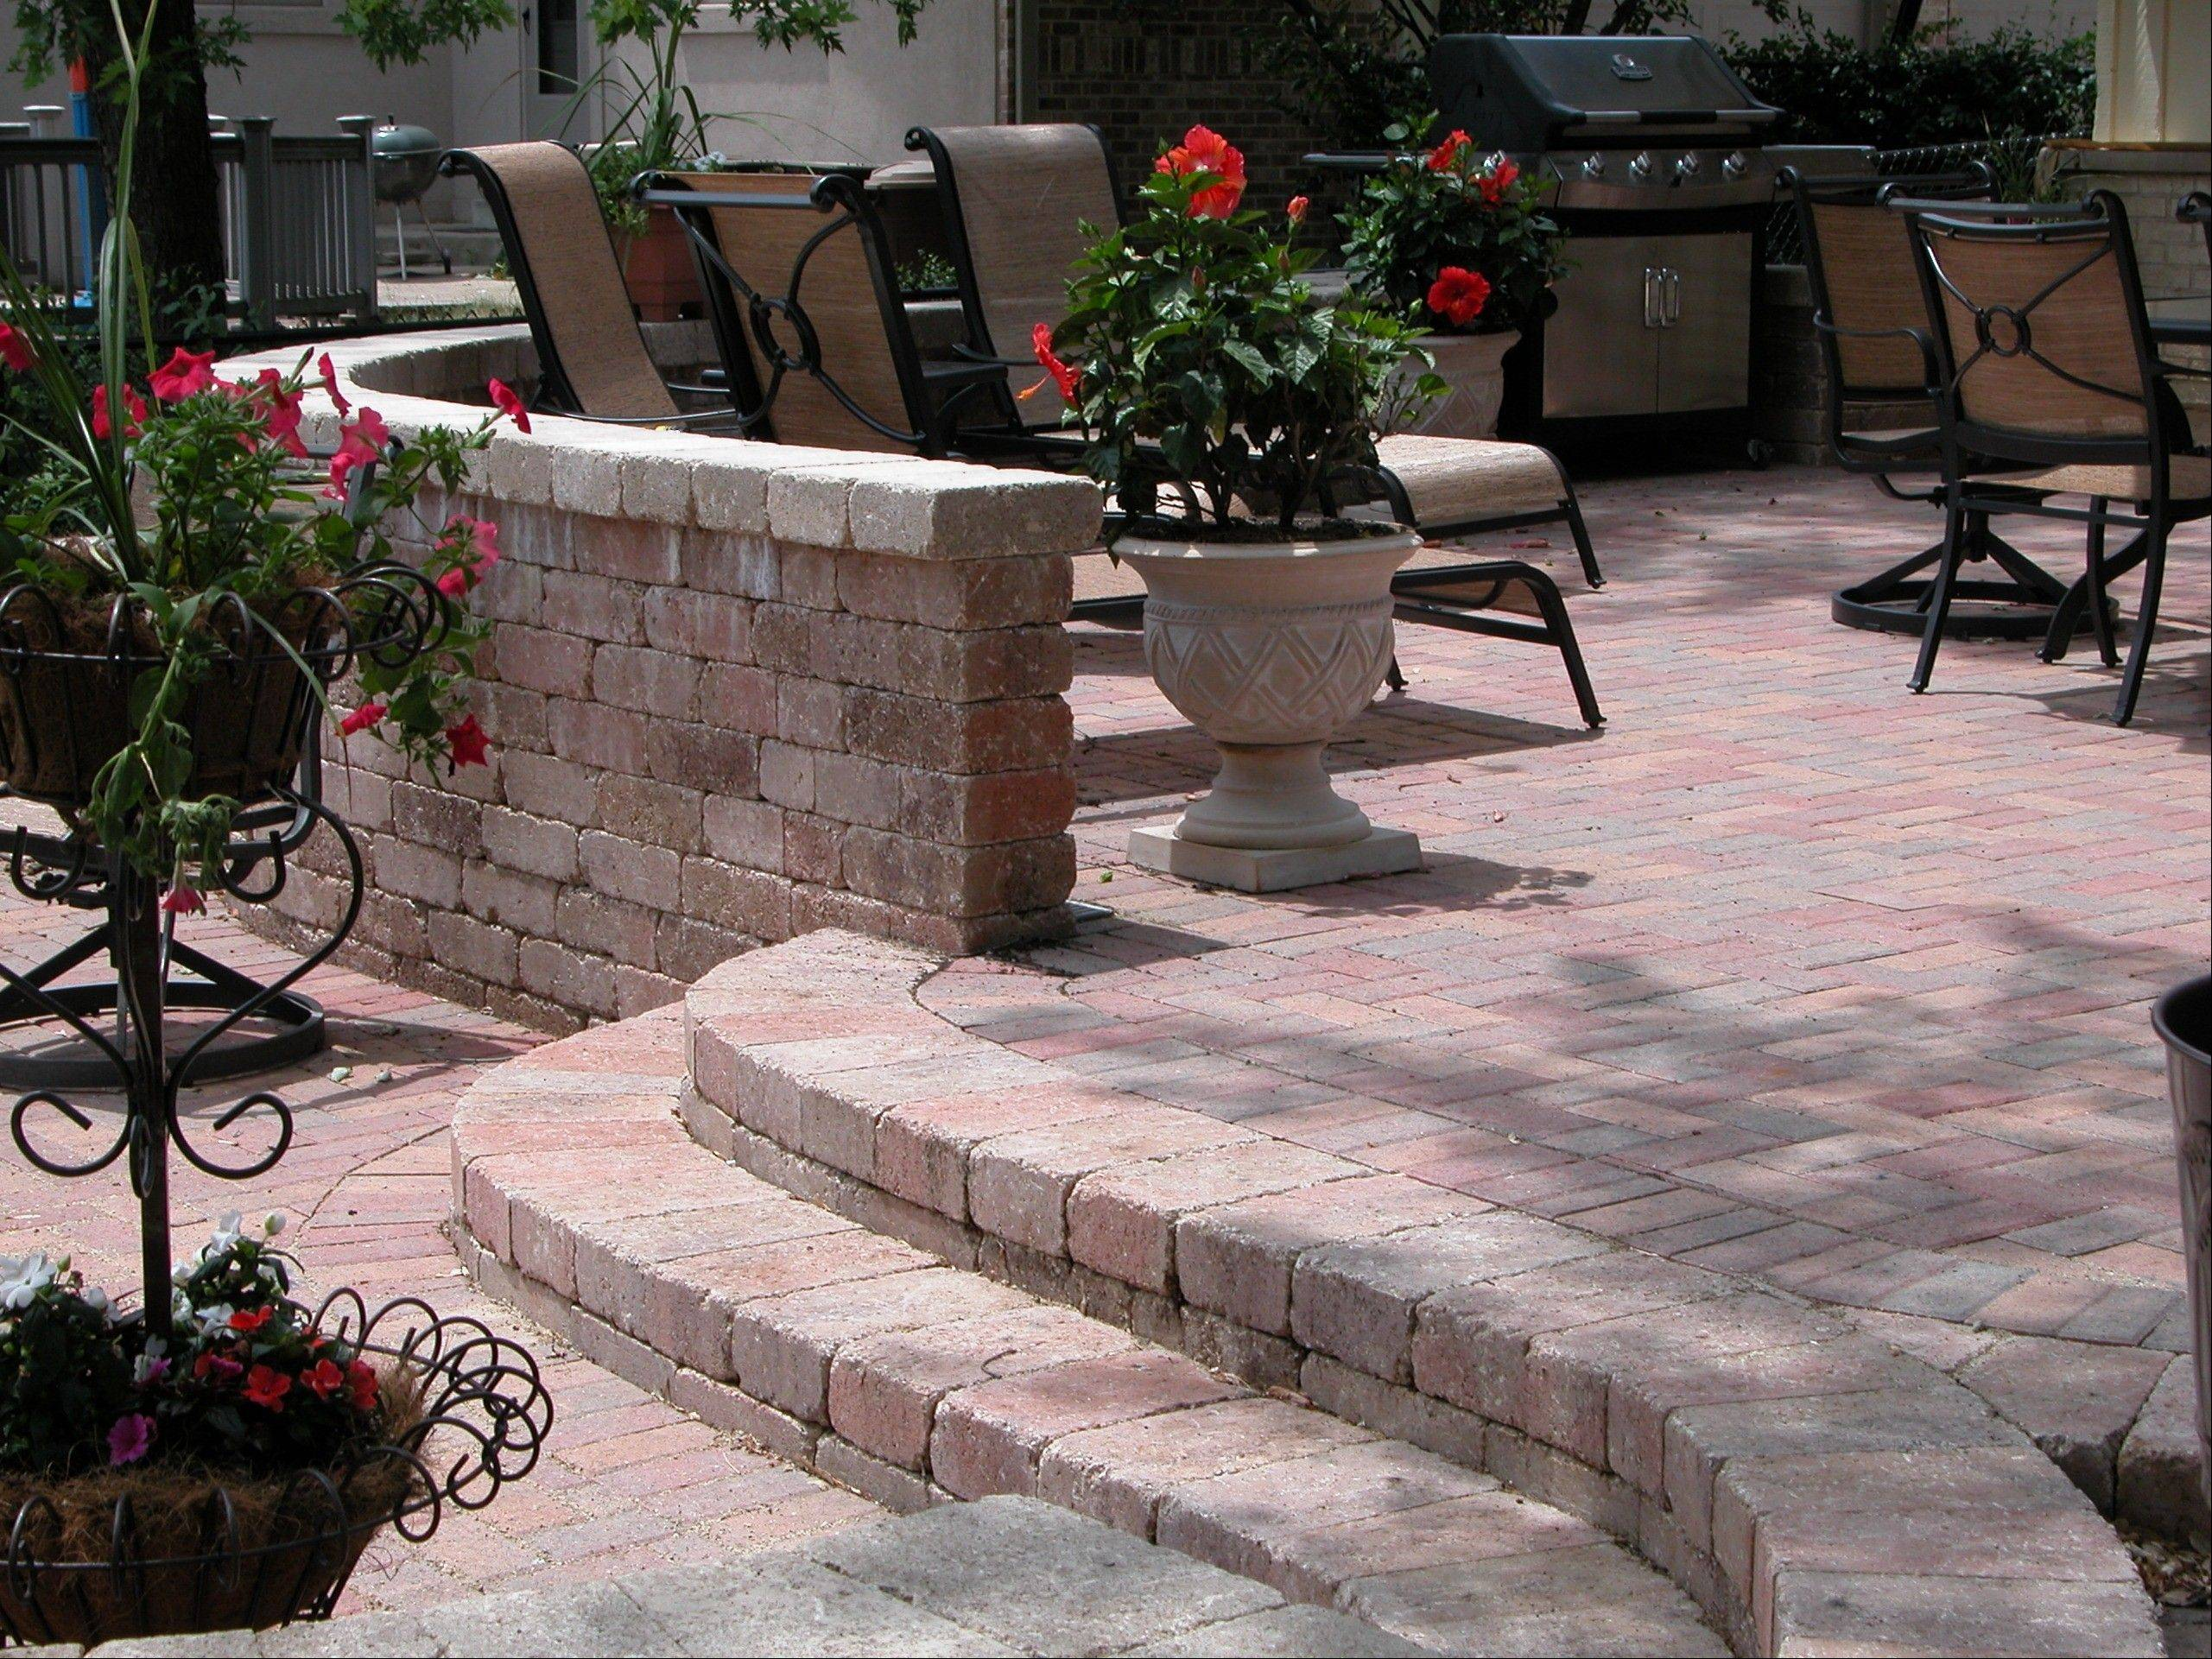 Homeowners have begun to invest in outdoor improvements once again, said Colin Taheny of RYCO Landscaping.